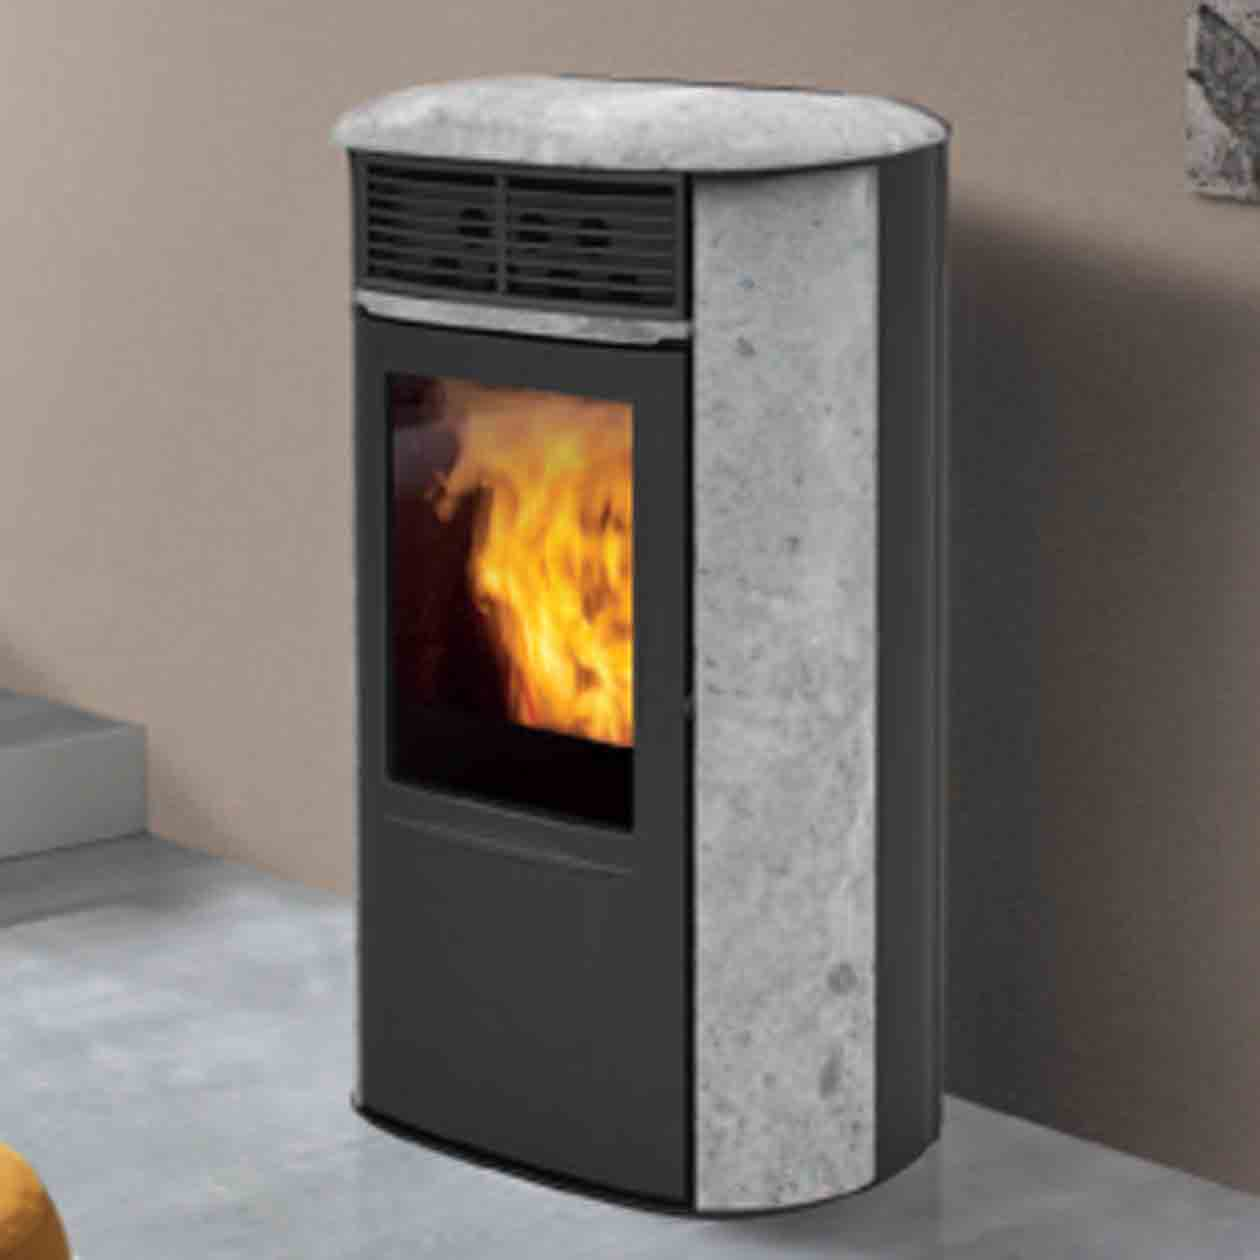 Save More Than 50 In Heating Costs Compared To Gas And Oil Central Systems With Wood Pellet Stove